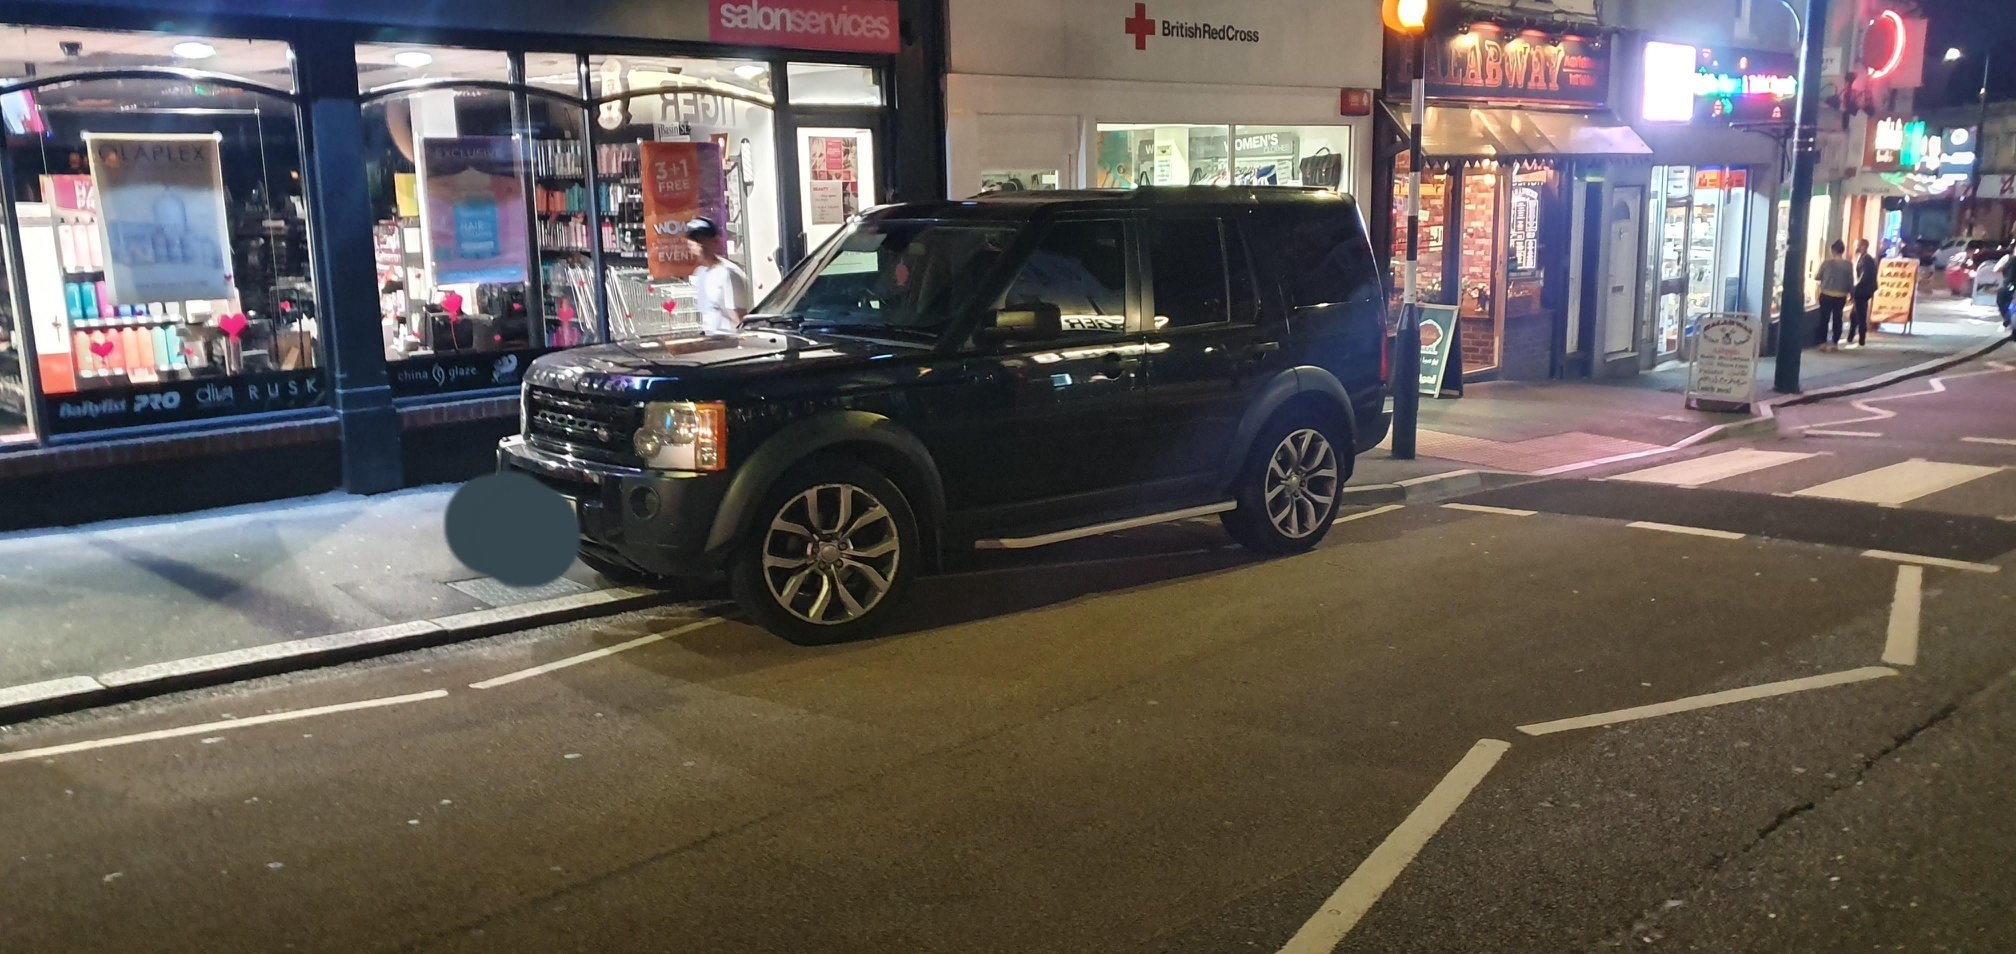 Range Rover driver's bad parking outside Roosters